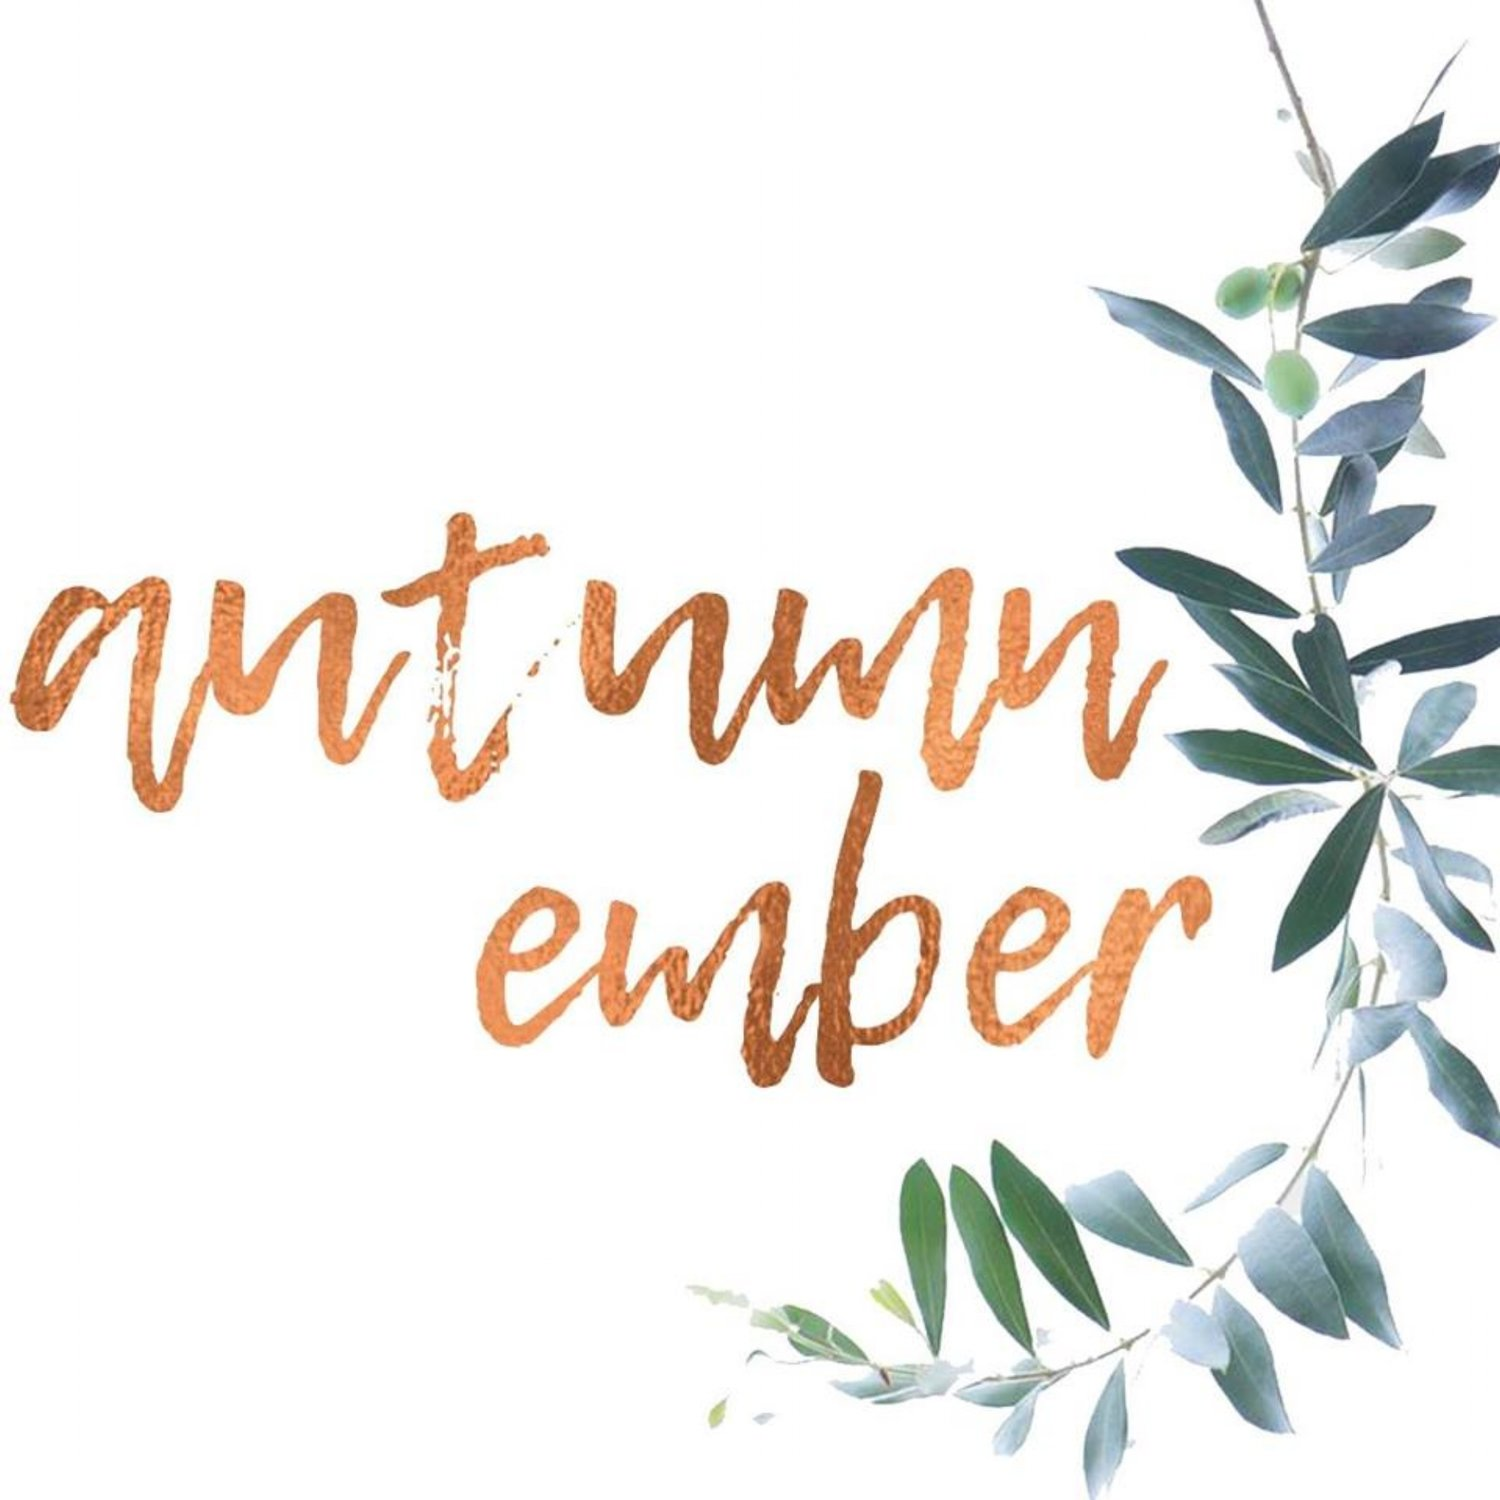 Autumn Ember Photography